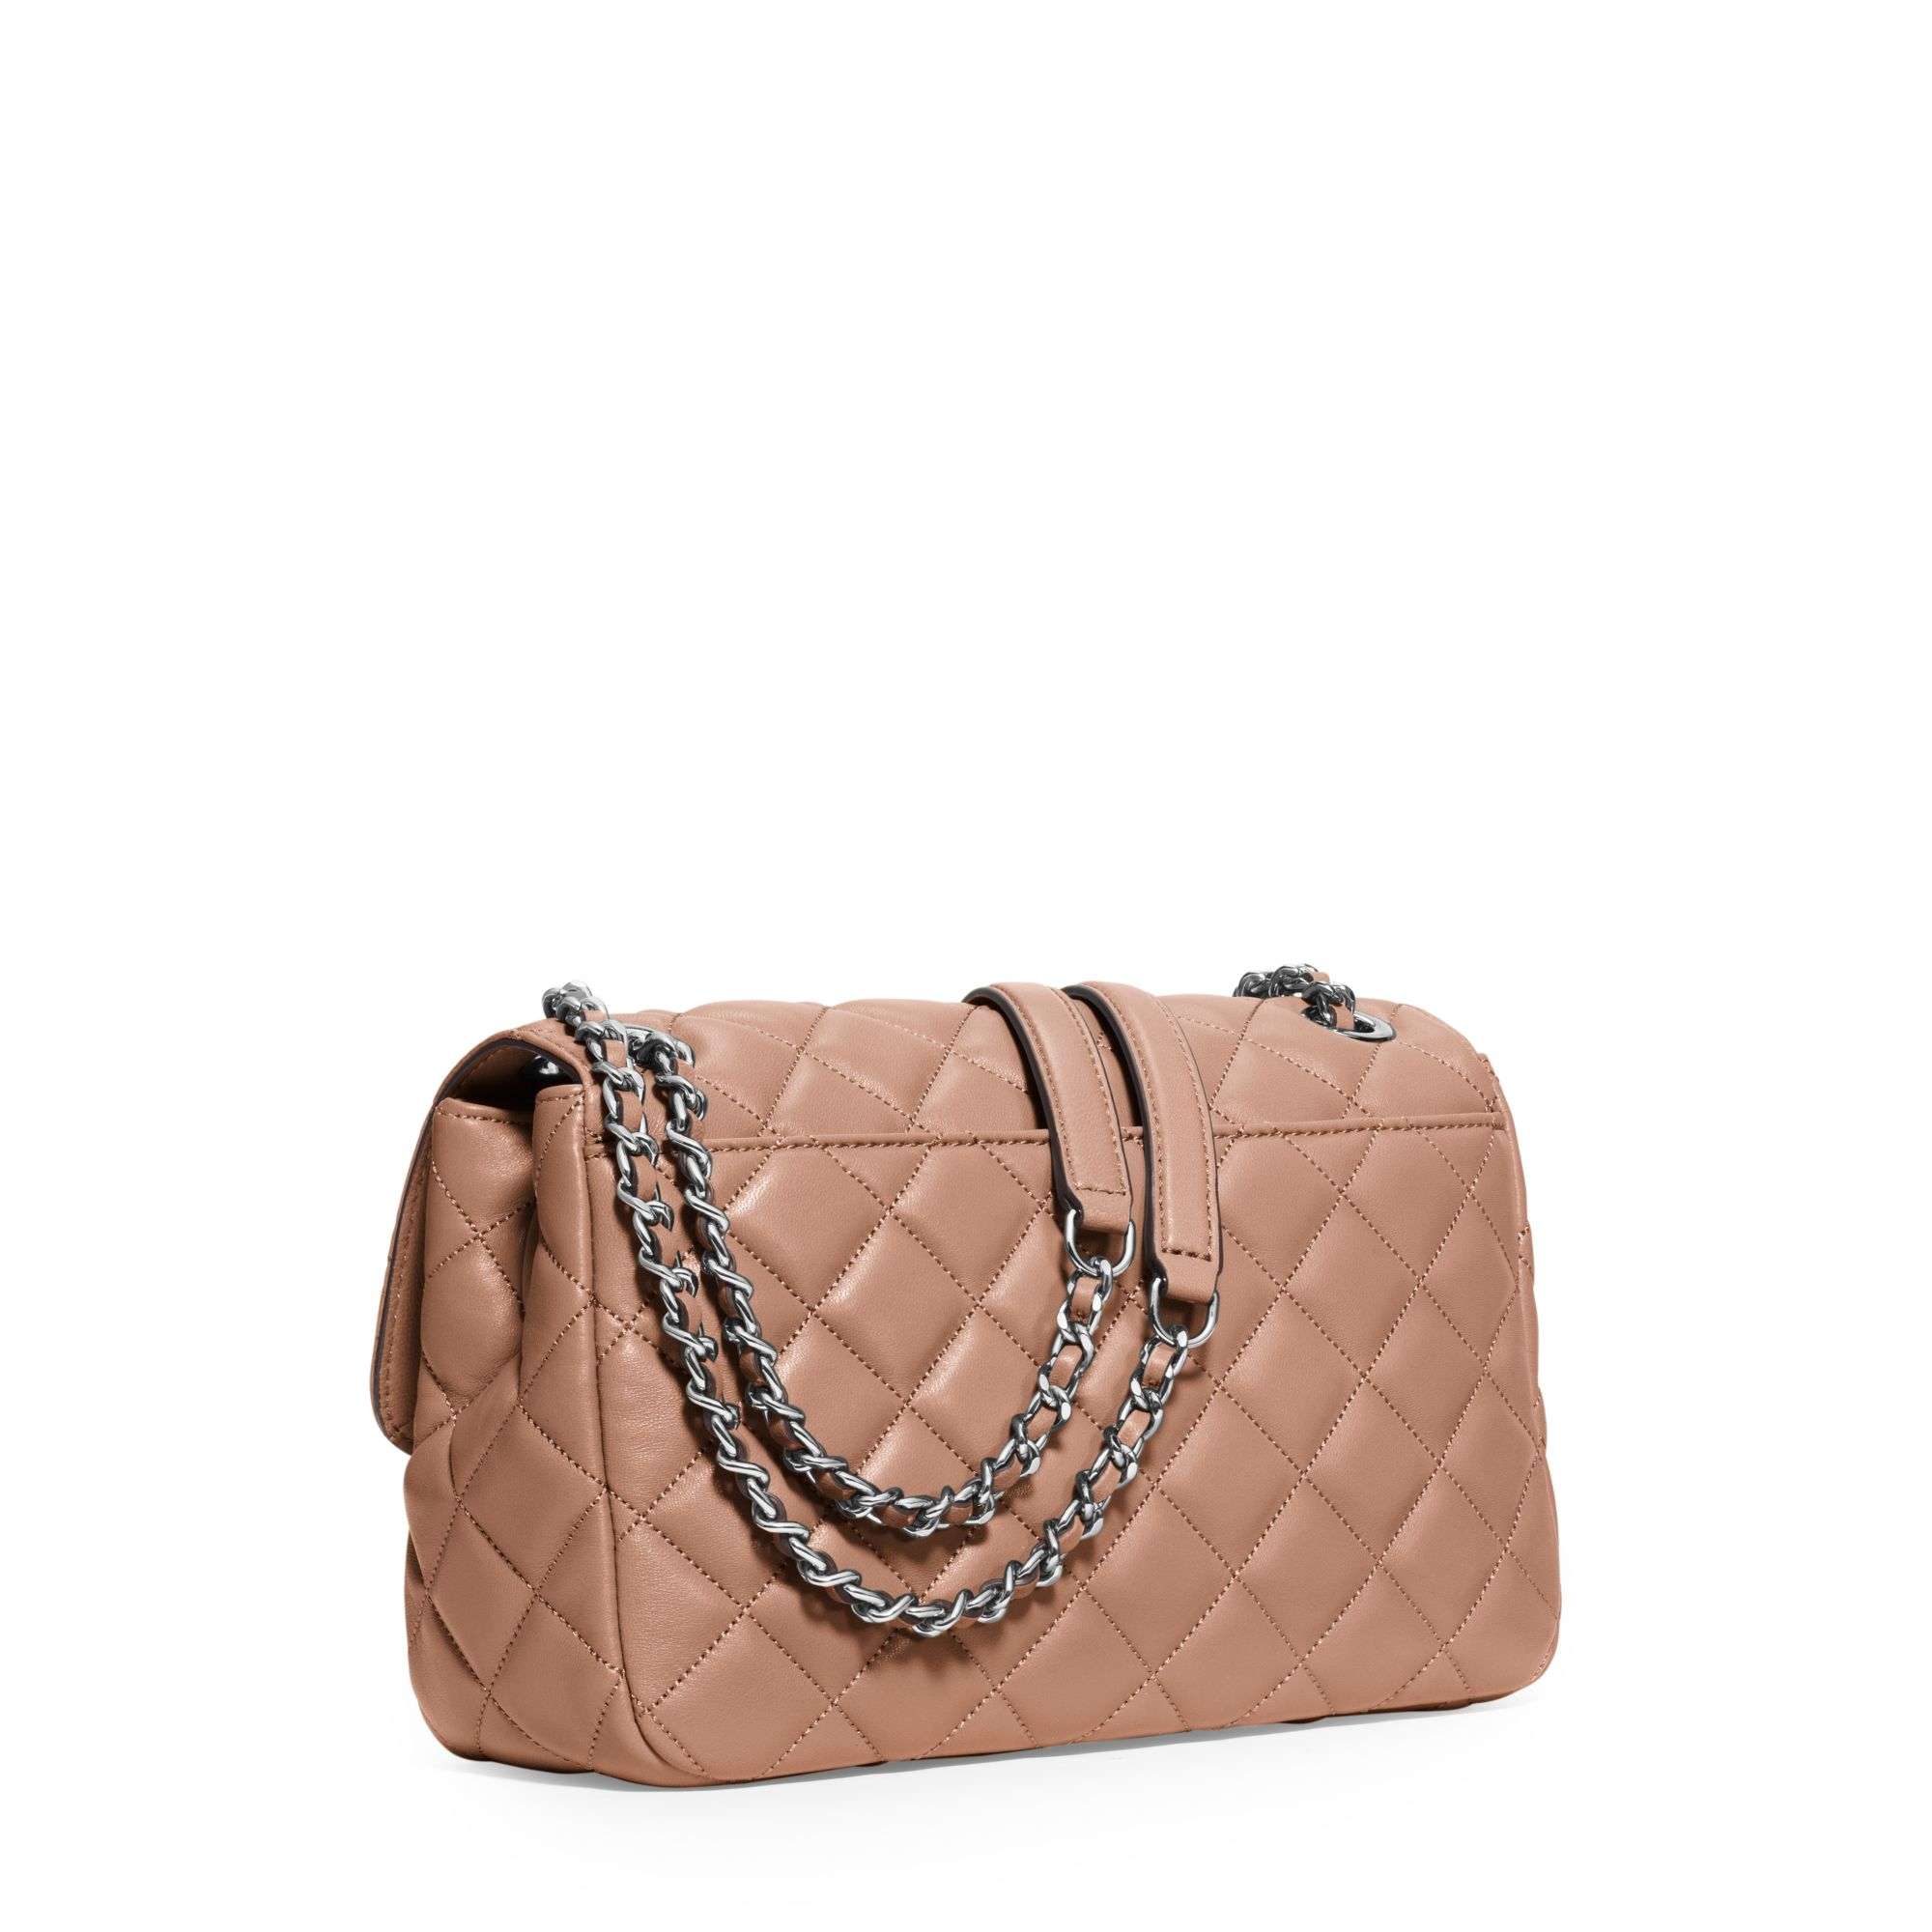 21a148285f Lyst - Michael Kors Sloan Large Quilted-leather Shoulder Bag in Pink